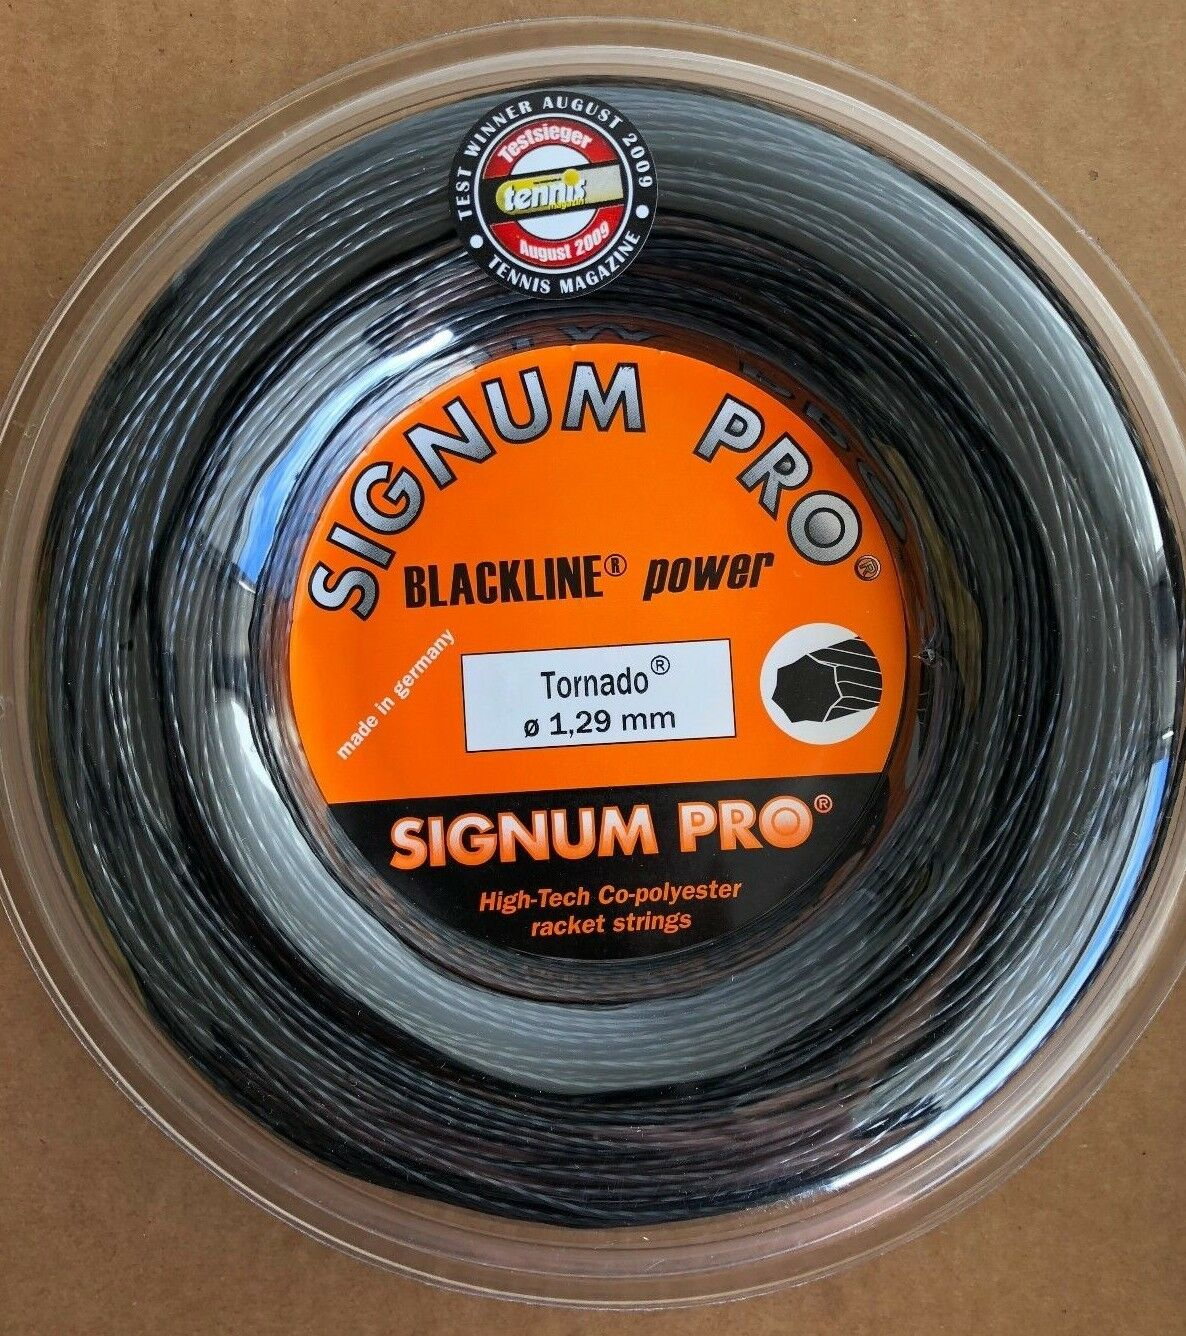 Signum Pro Tornado 16G (1.29mm) Tennis String REEL - 660 feet   200m